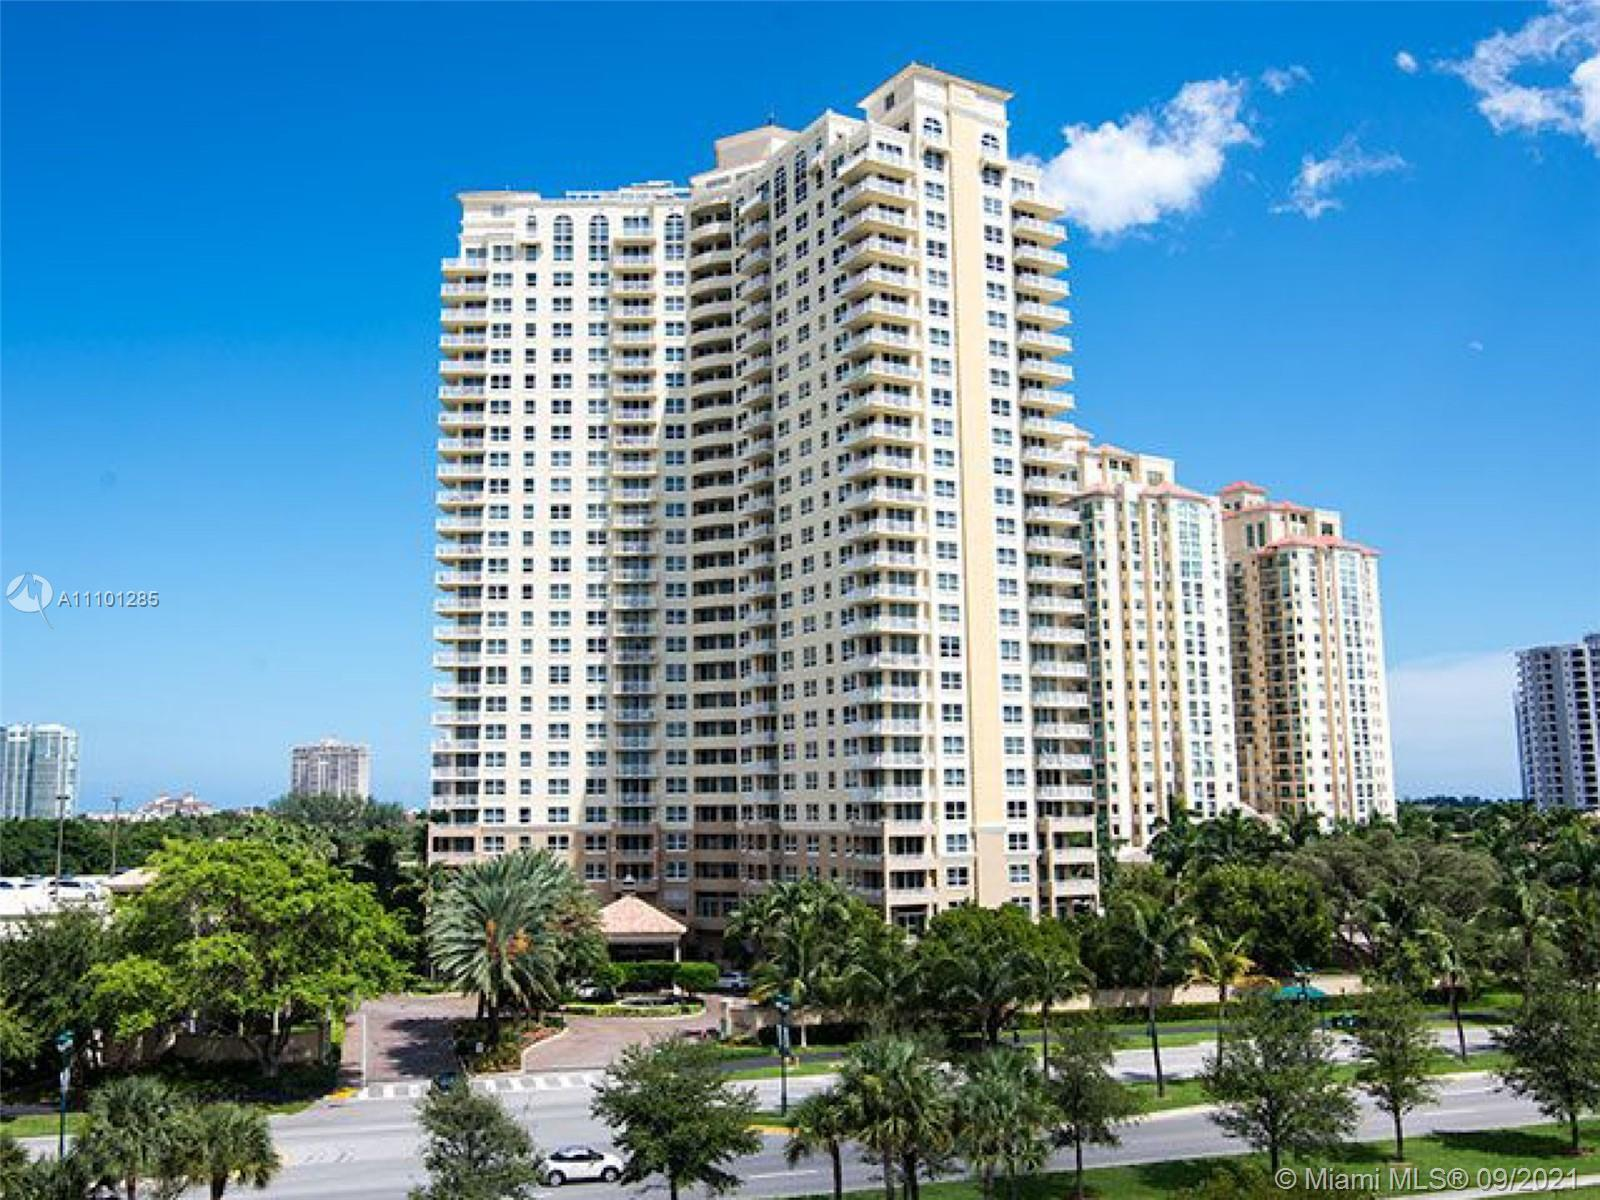 !! AMAZING OCEAN AND GOLF COURSE VIEWS OF  TURNBERRY ISLE GOLF COURSE.!! MOST WANTED UNIT LOCATION I